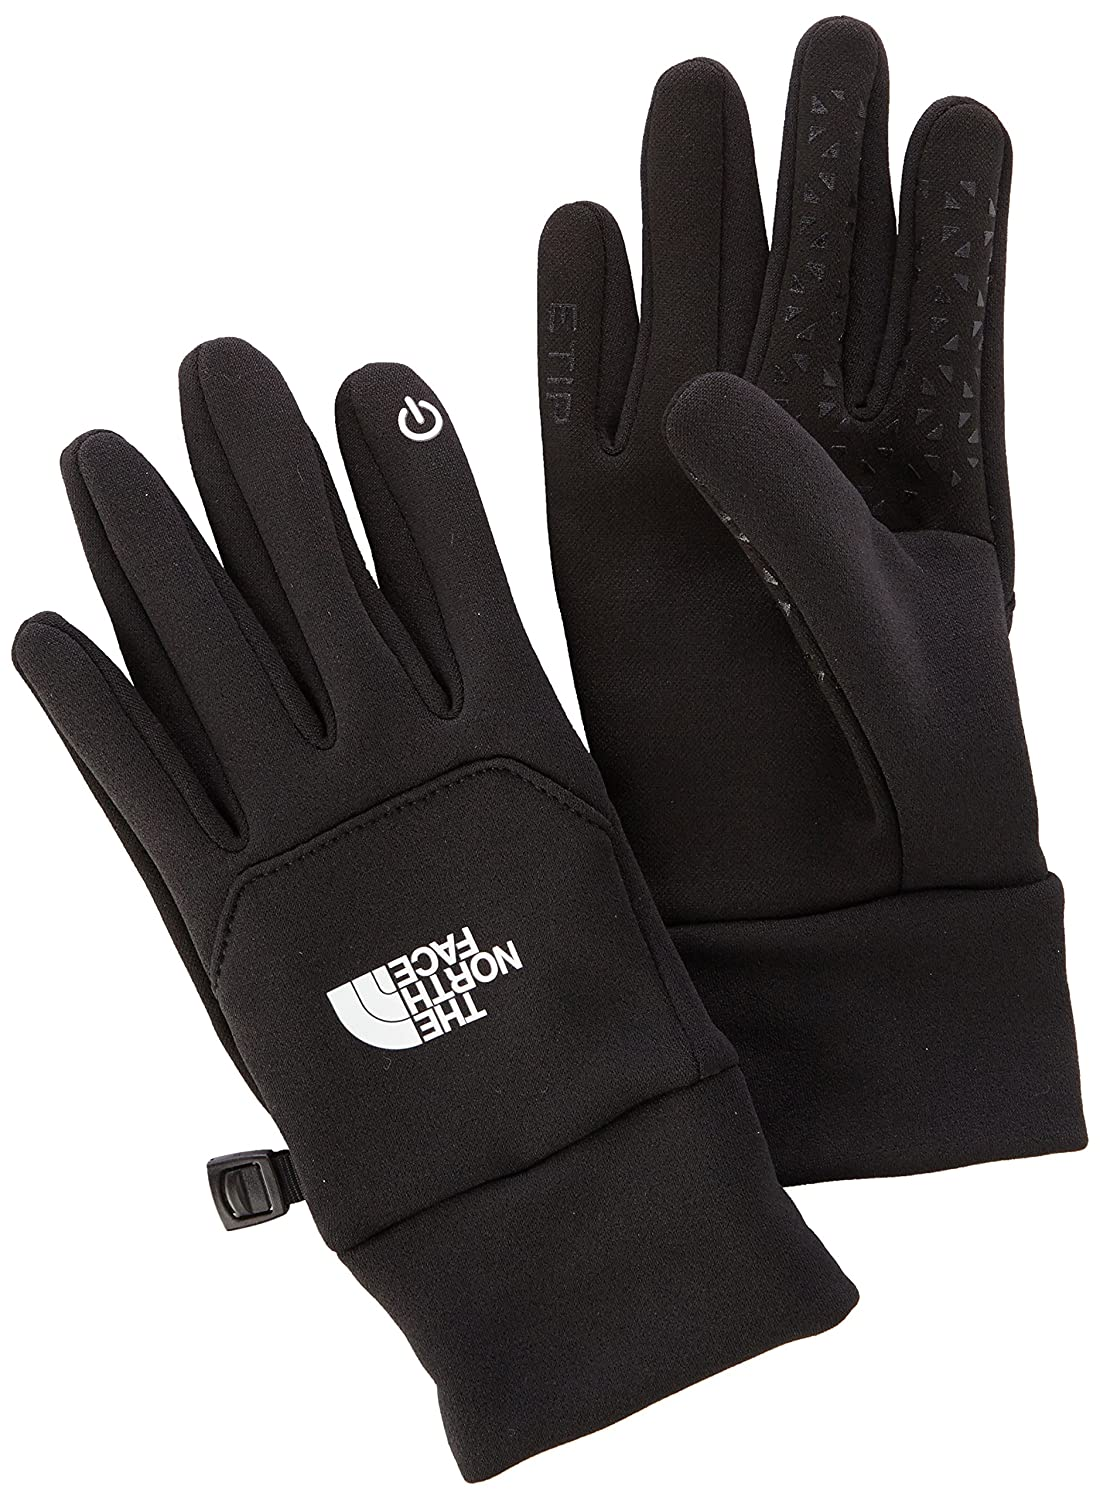 efb90865301 Amazon.com  The North Face Women s Etip Glove  THE NORTH FACE  Clothing